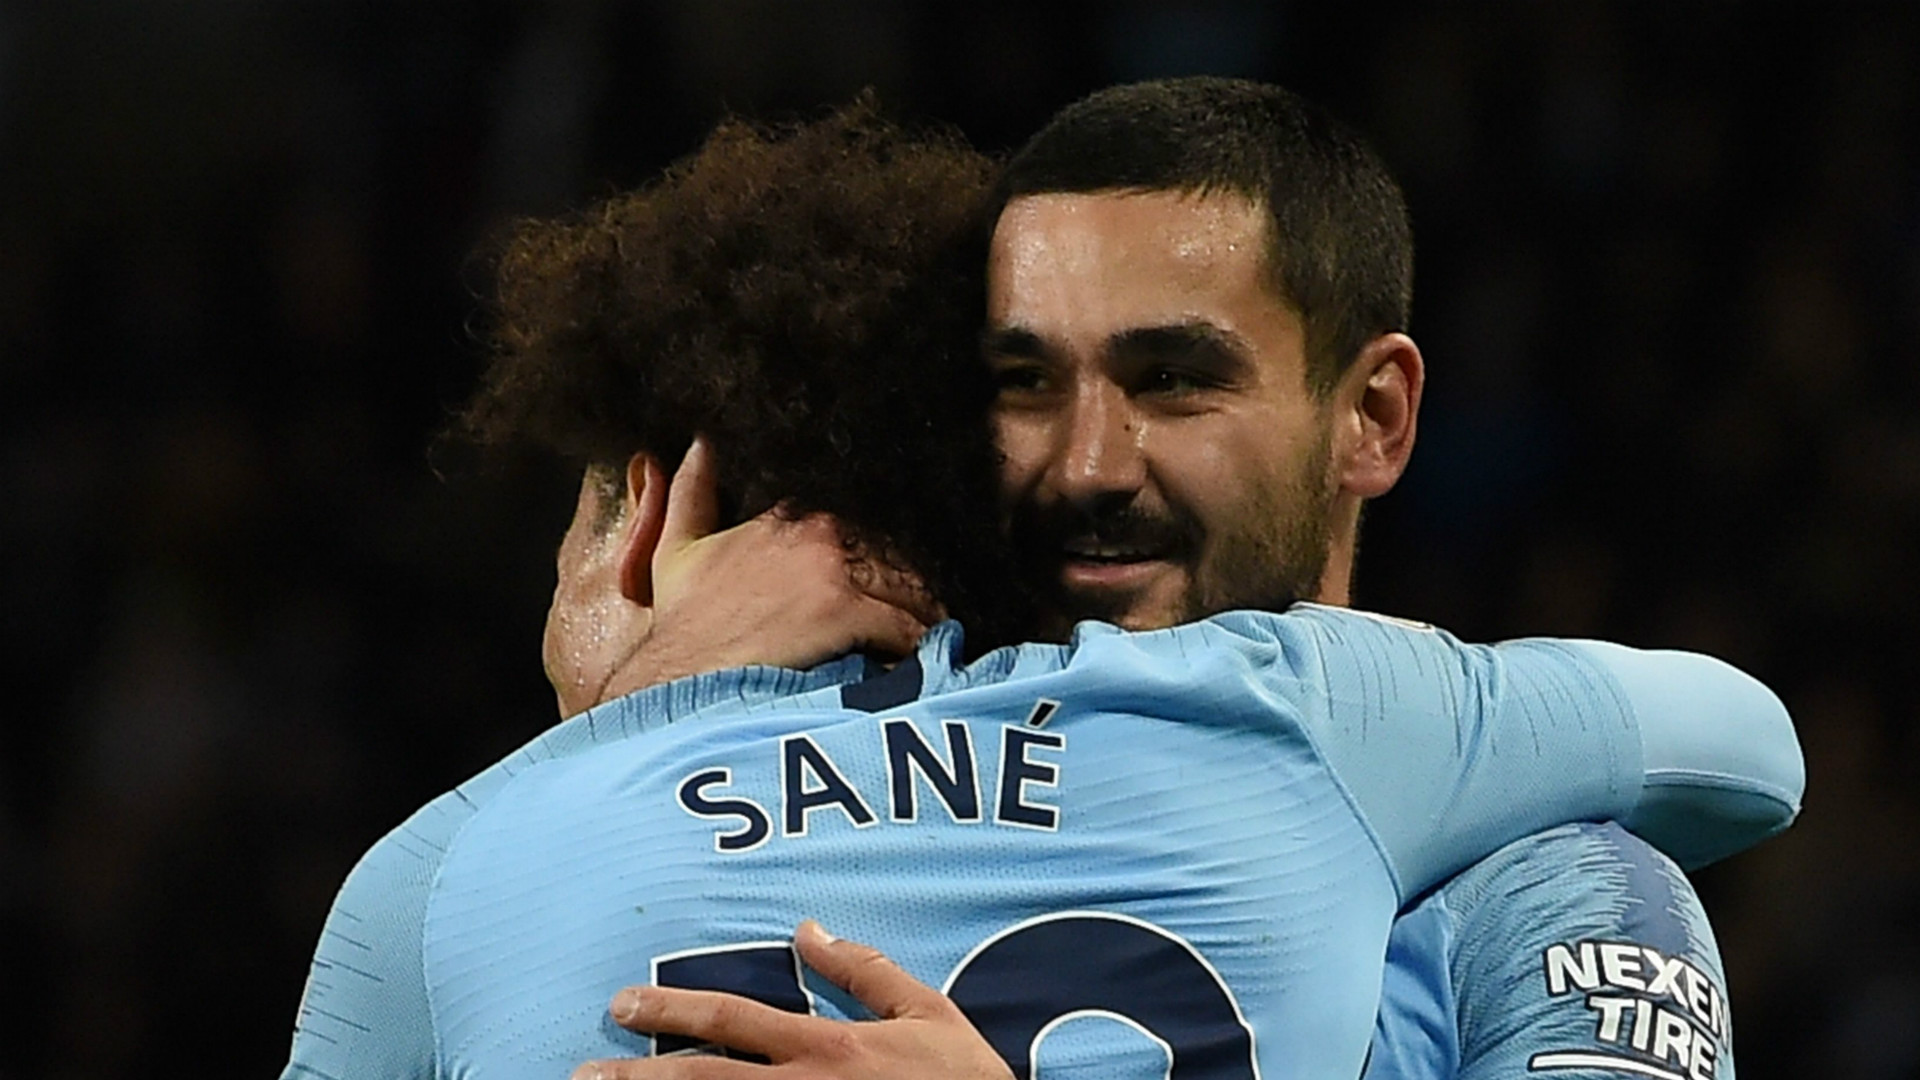 'Man City want to keep Sane' - Gundogan dismisses Bayern Munich rumours